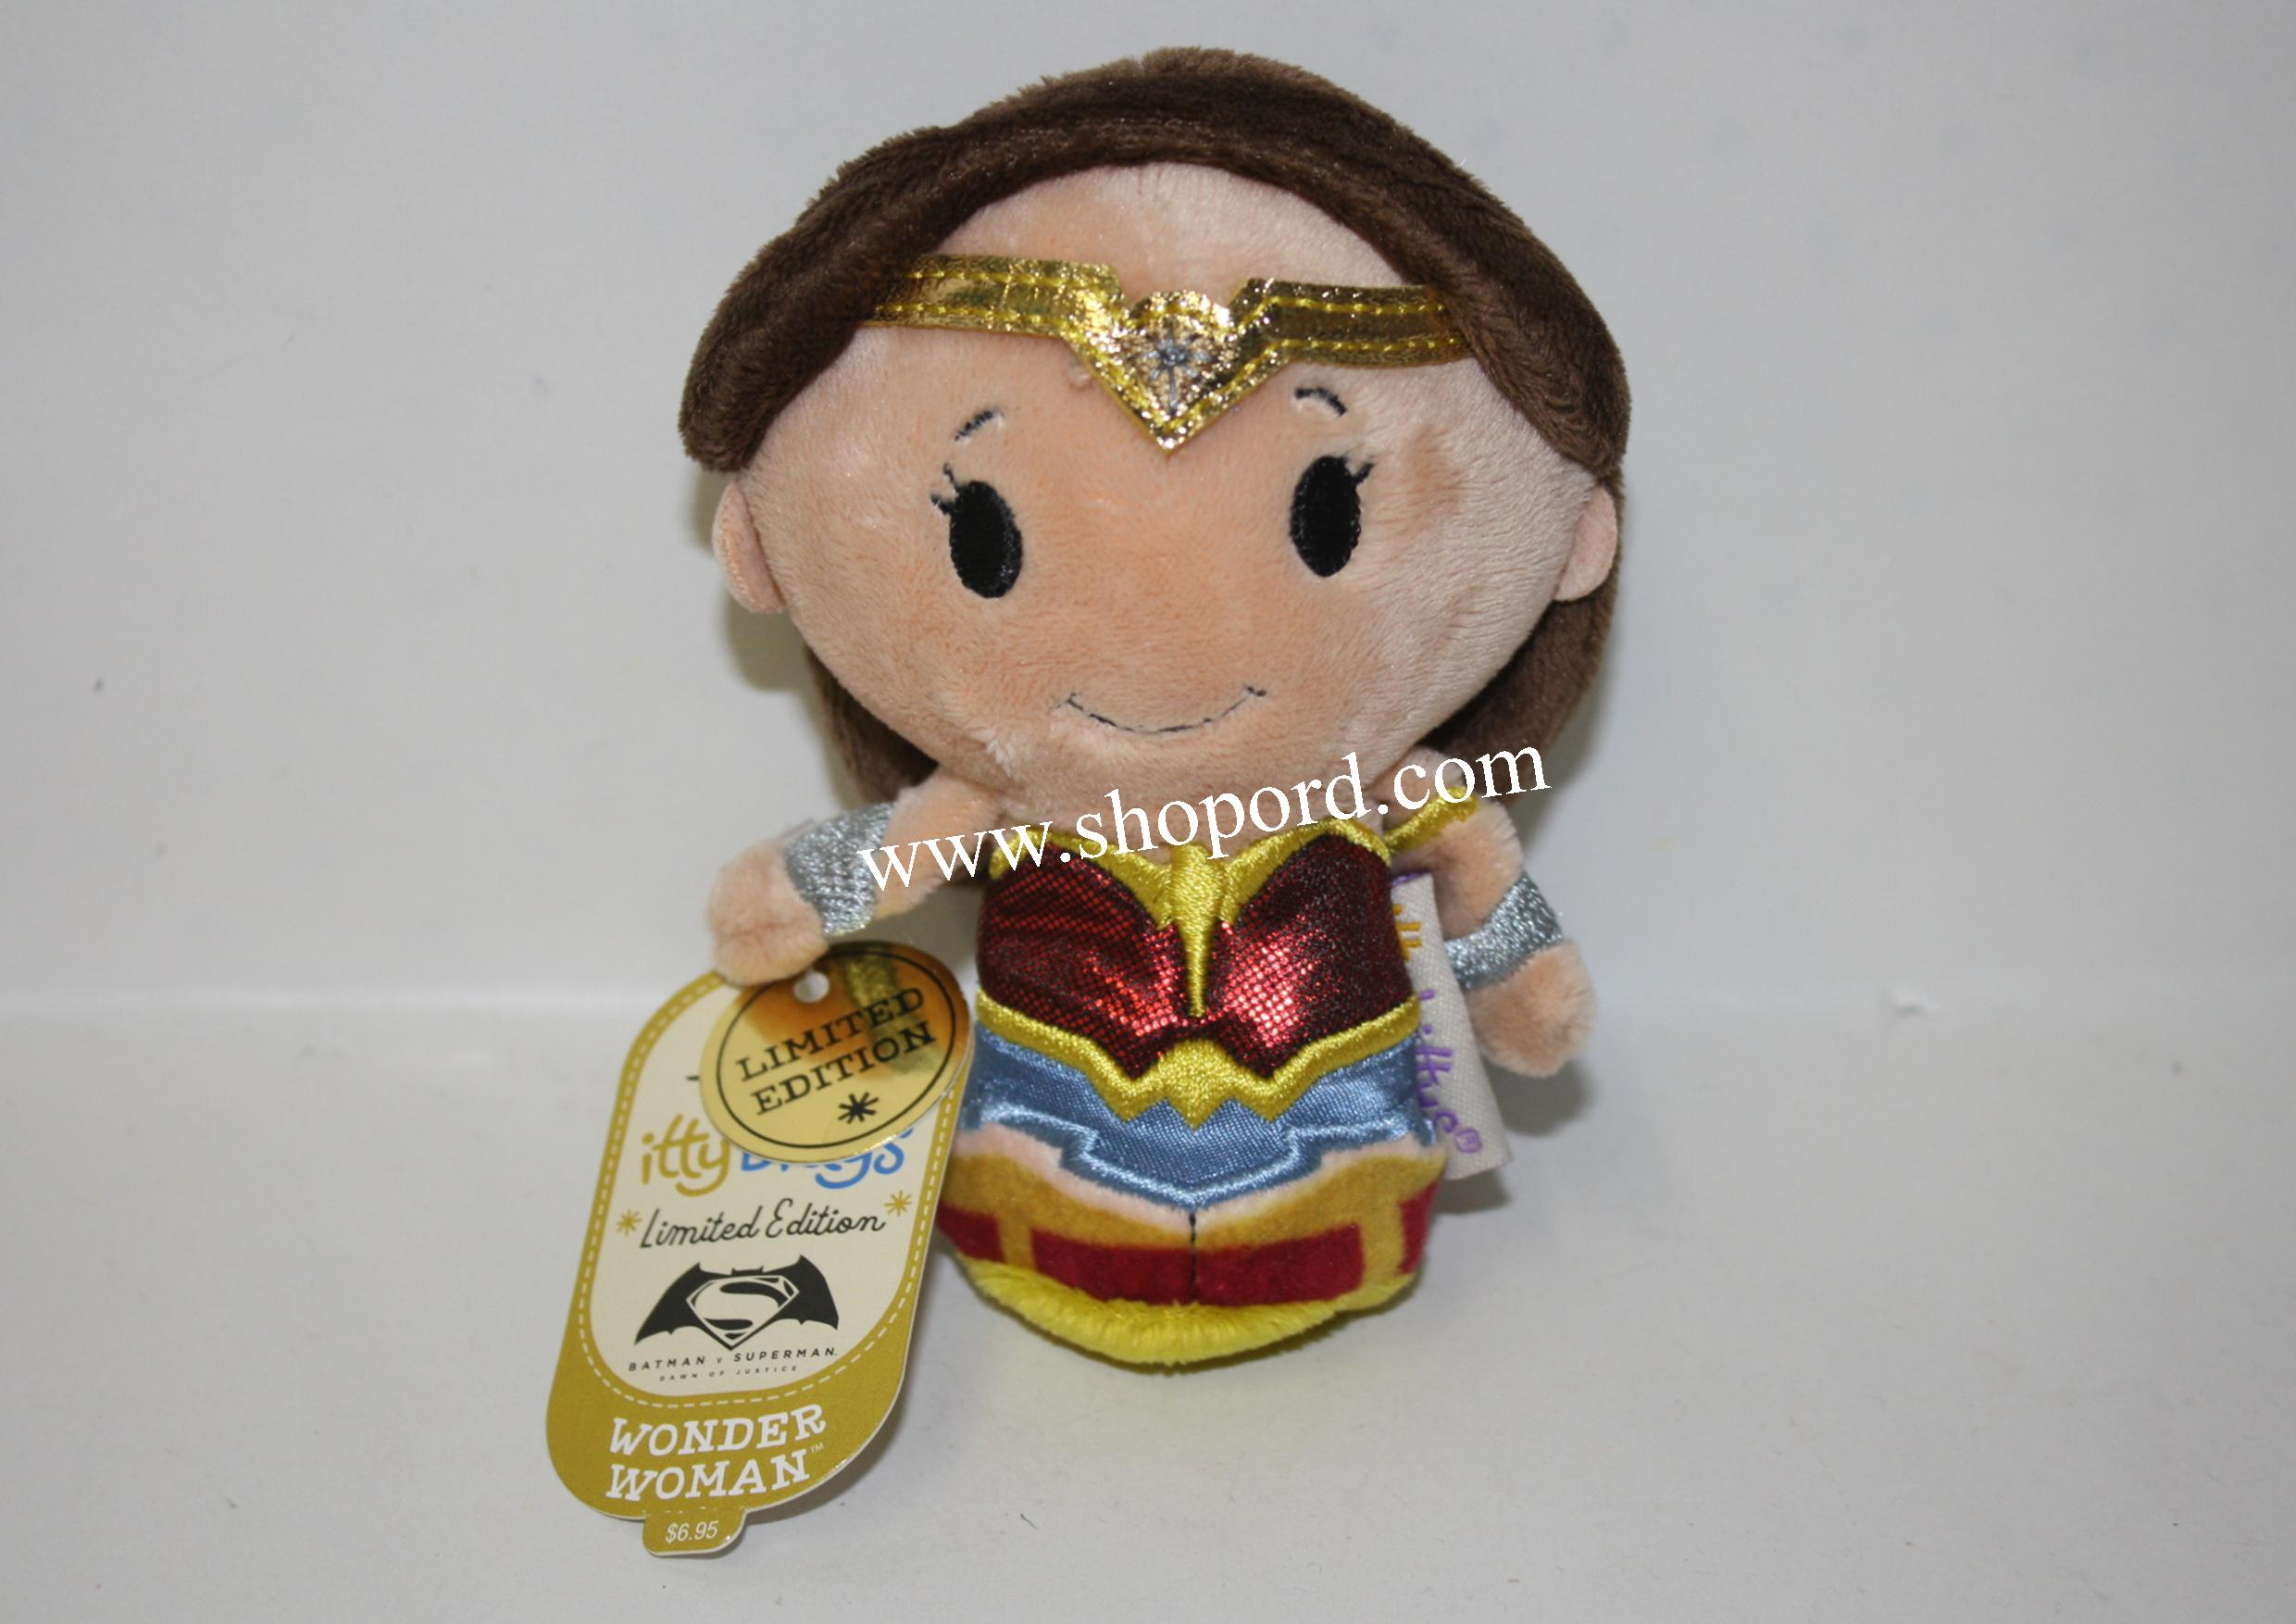 Hallmark itty bittys Wonder Woman Plush Limited Edition KID1046